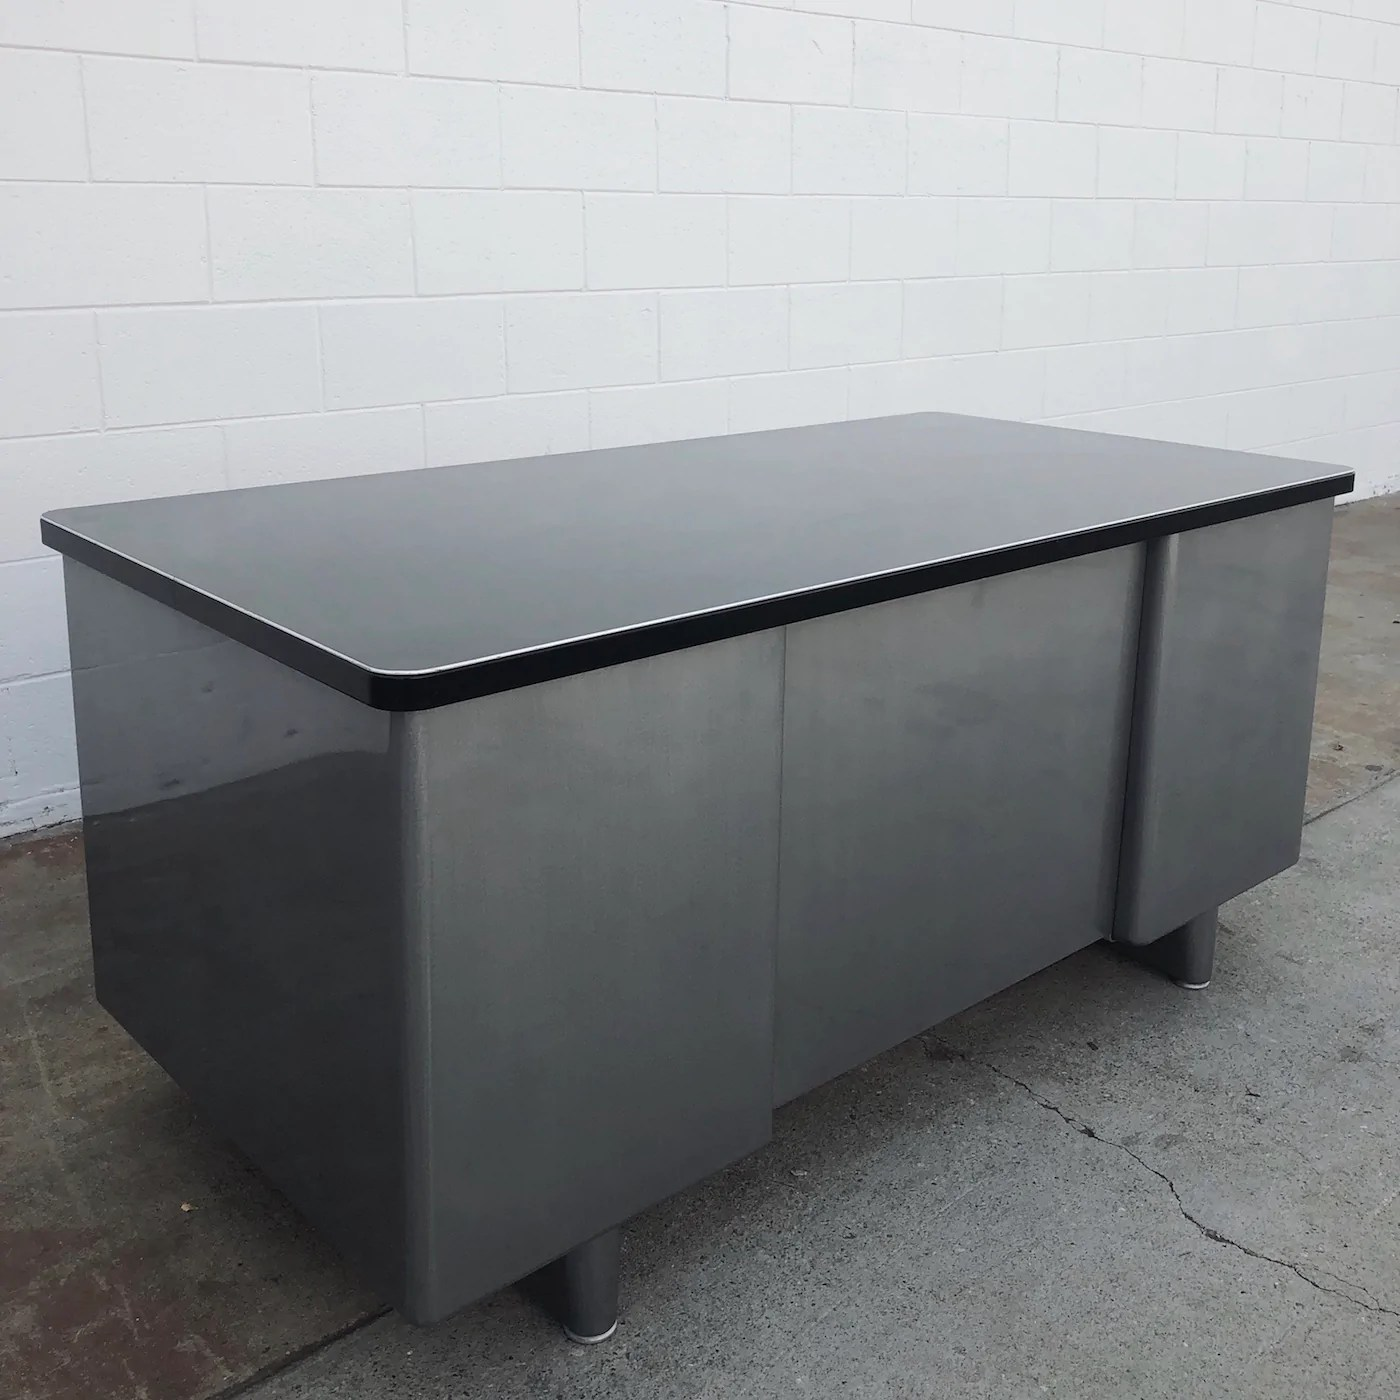 Metal Table Mcdowell Craig 60